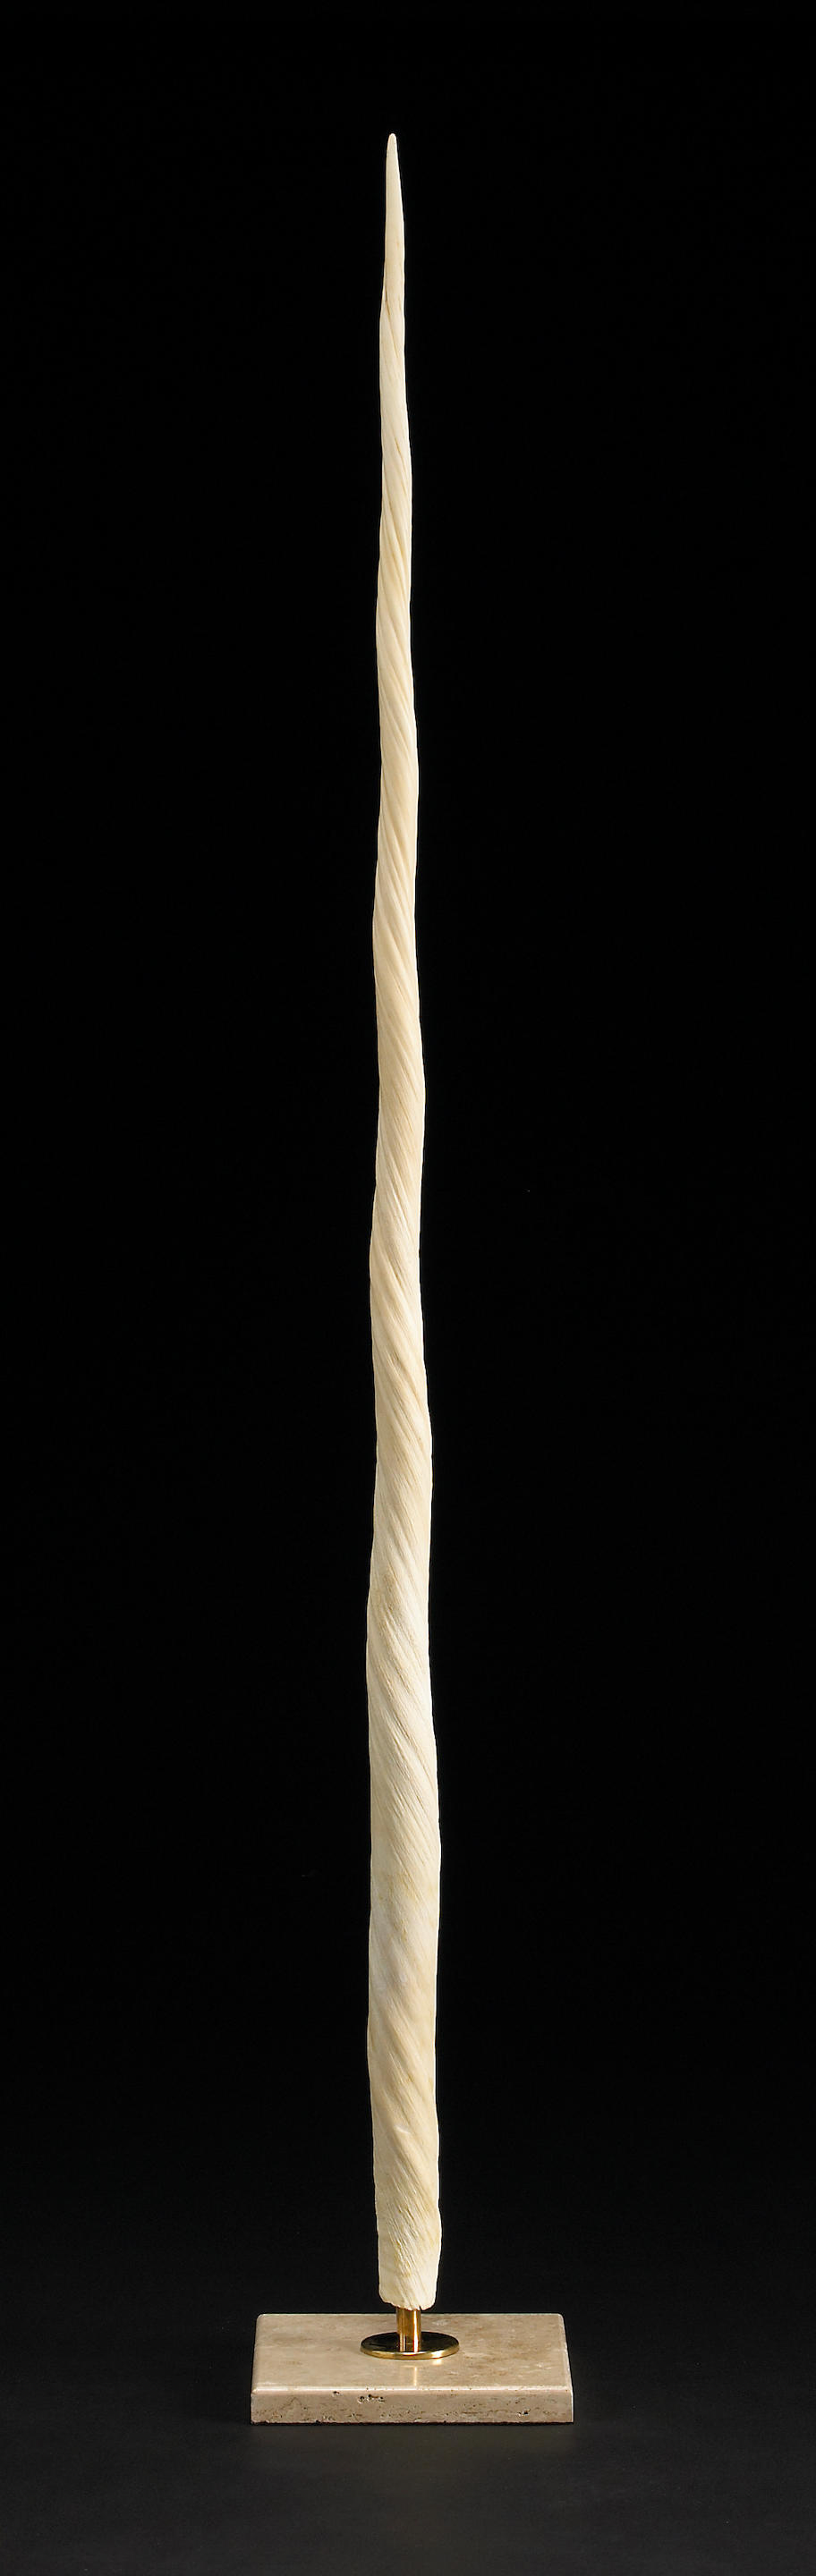 Rare Narwhal Tusk - LotSearch de